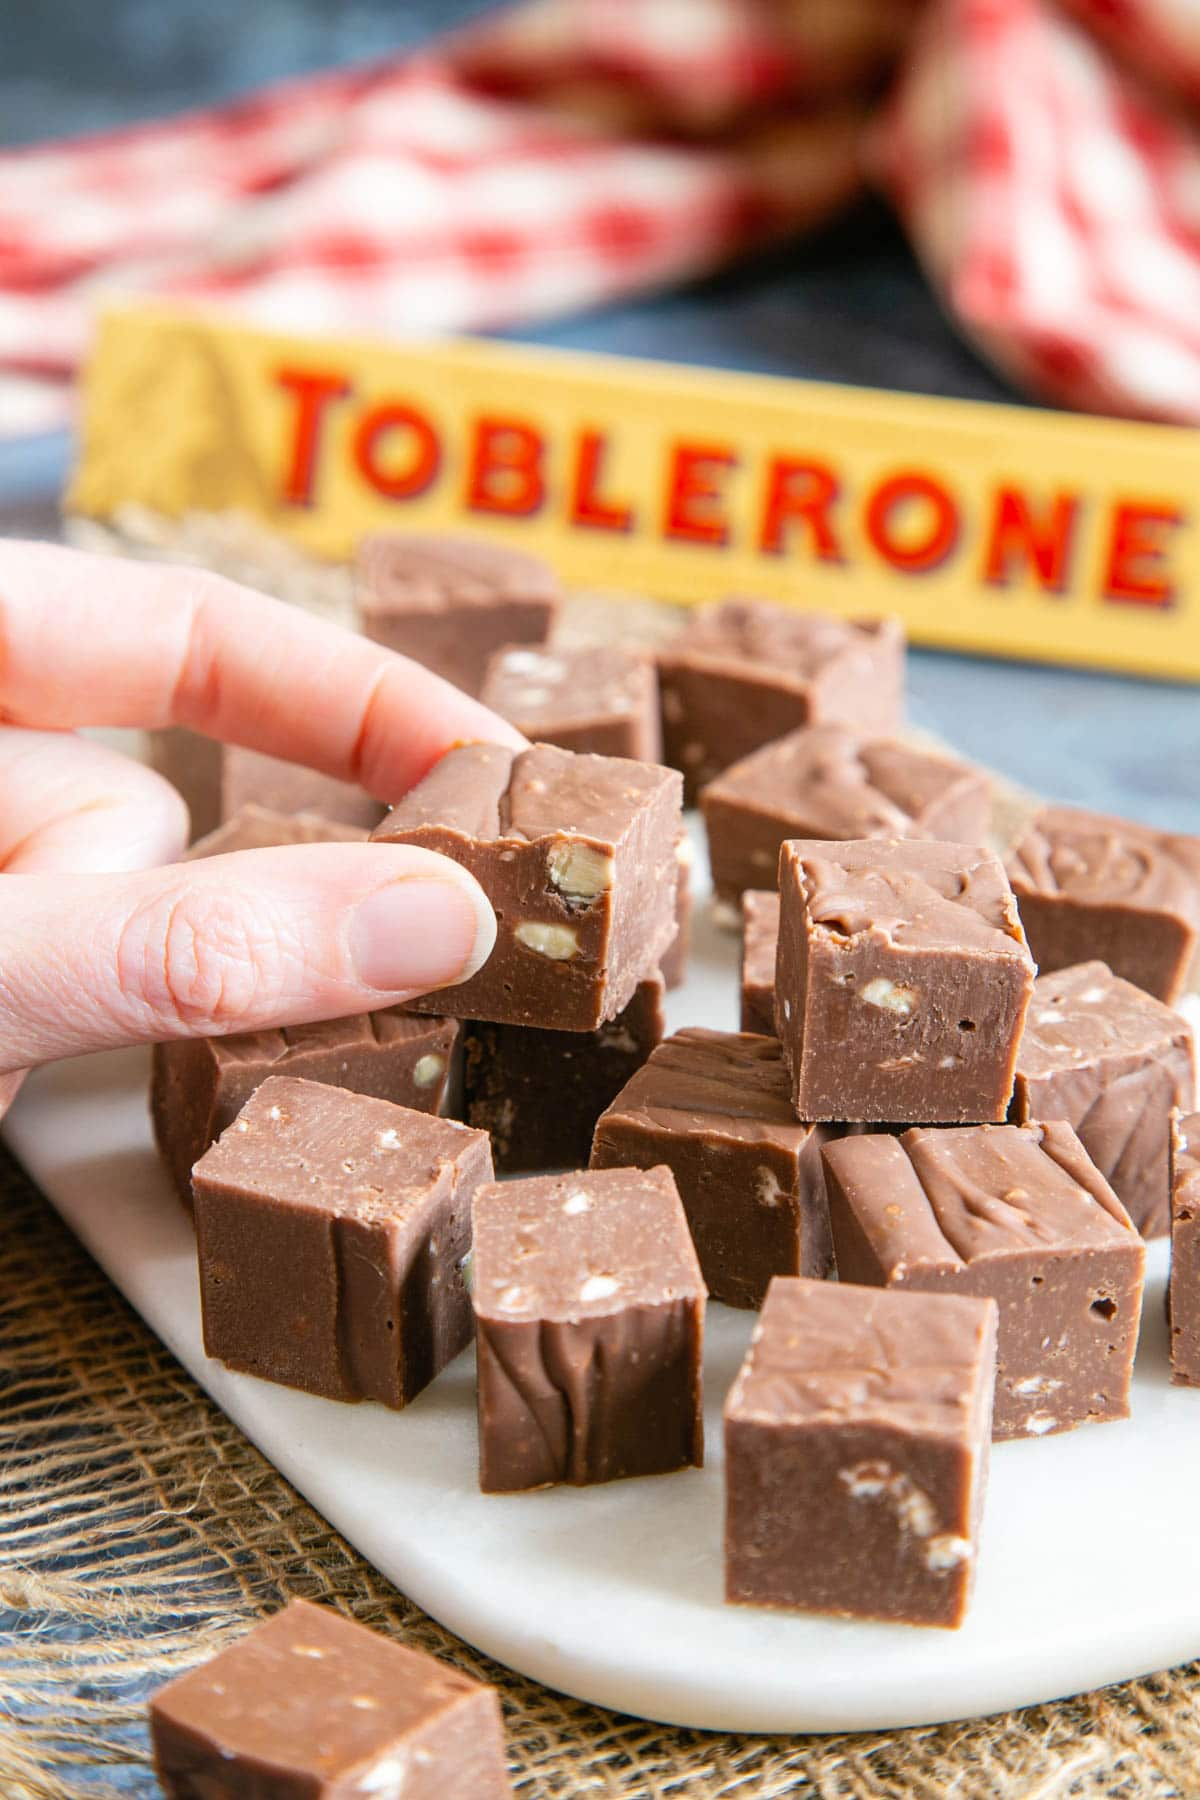 A picture of a hand taking a piece of fudge from a pile of 2cm cubes of fudge.